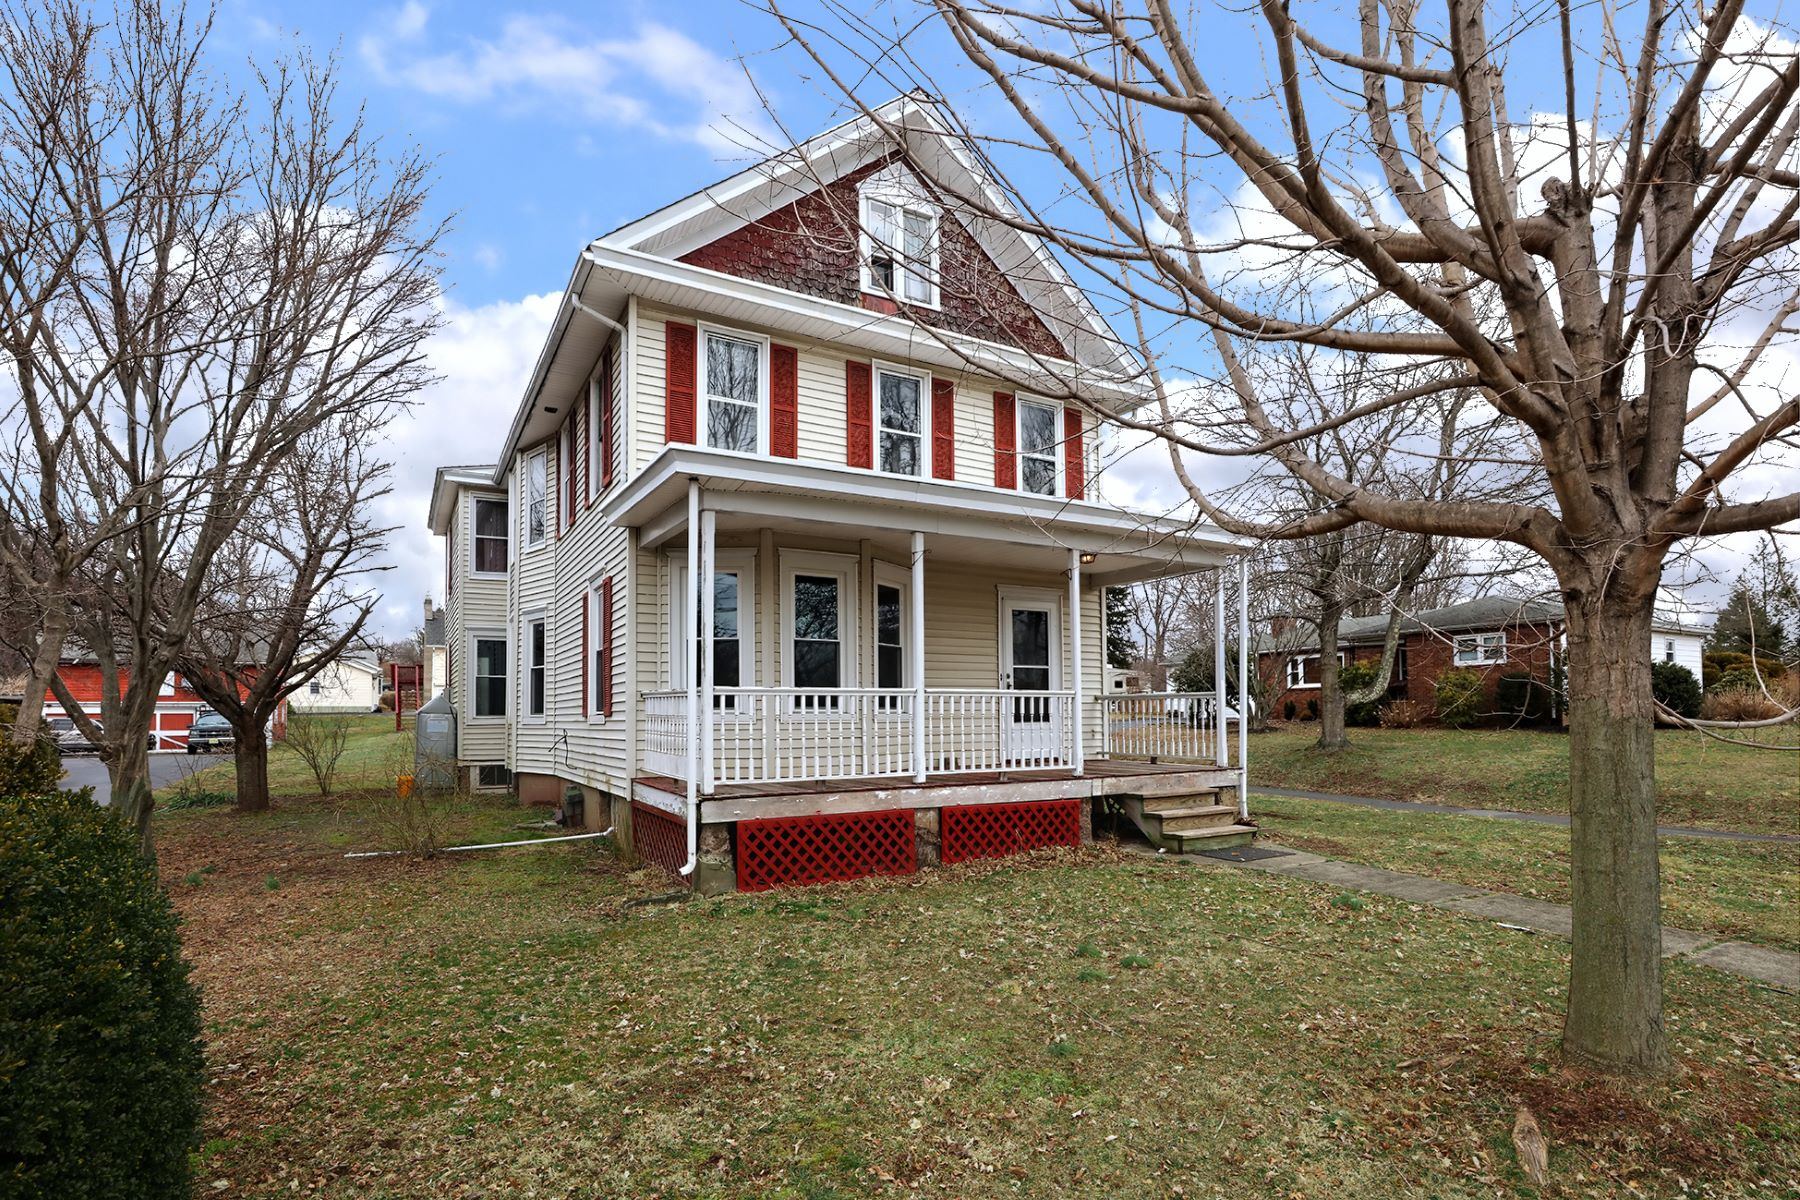 An In-town Gem With Beautiful Vintage Woodwork 540 Rosemont Ringoes Road, Stockton, Nova Jersey 08559 Estados Unidos